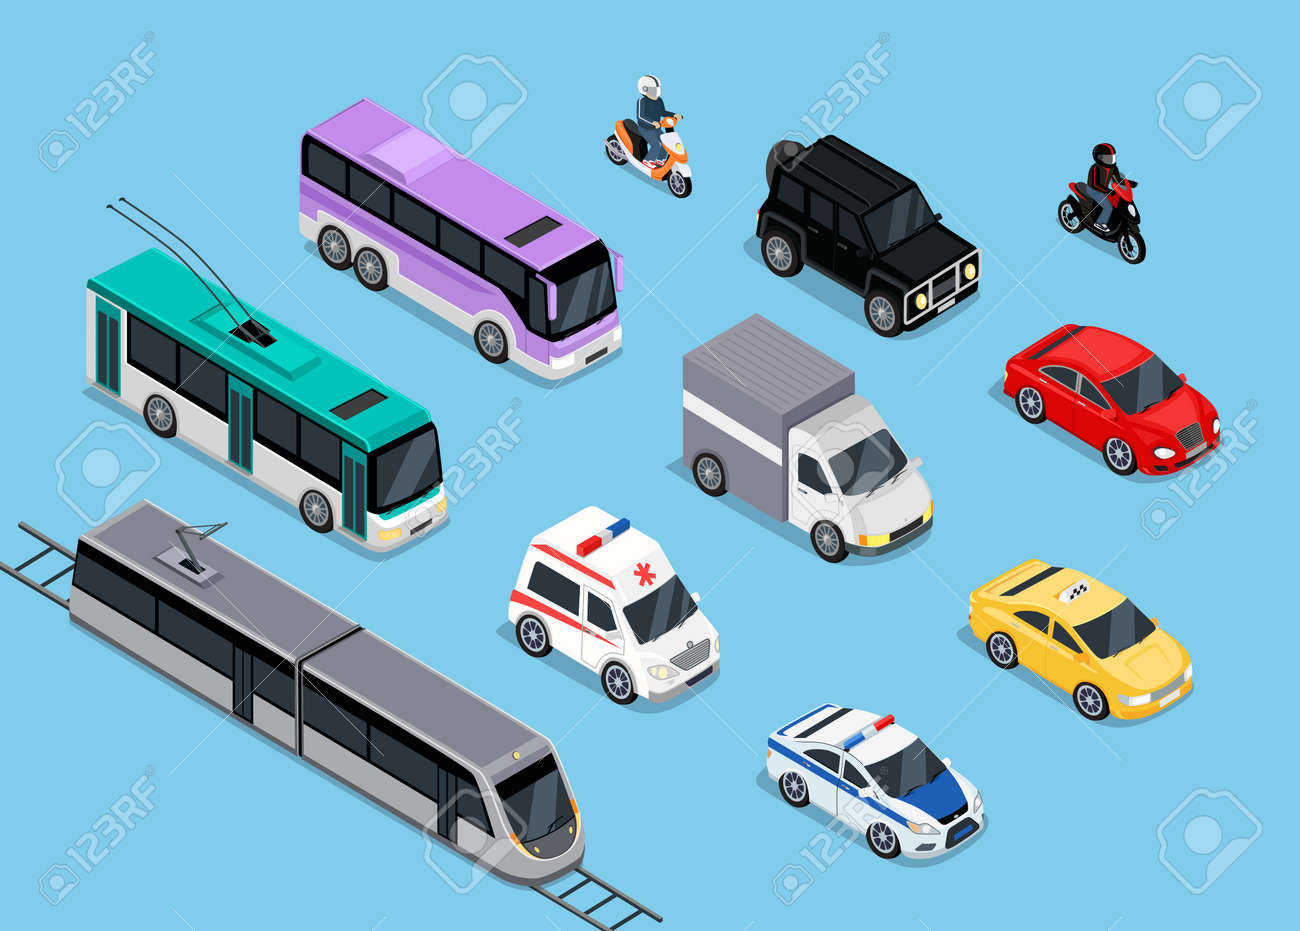 Isometric 3d transport set flat design. Car vehicle, transportation traffic, truck van, auto cargo, bus and automobile, police and motorcycle illustration Stock Vector - 50867574